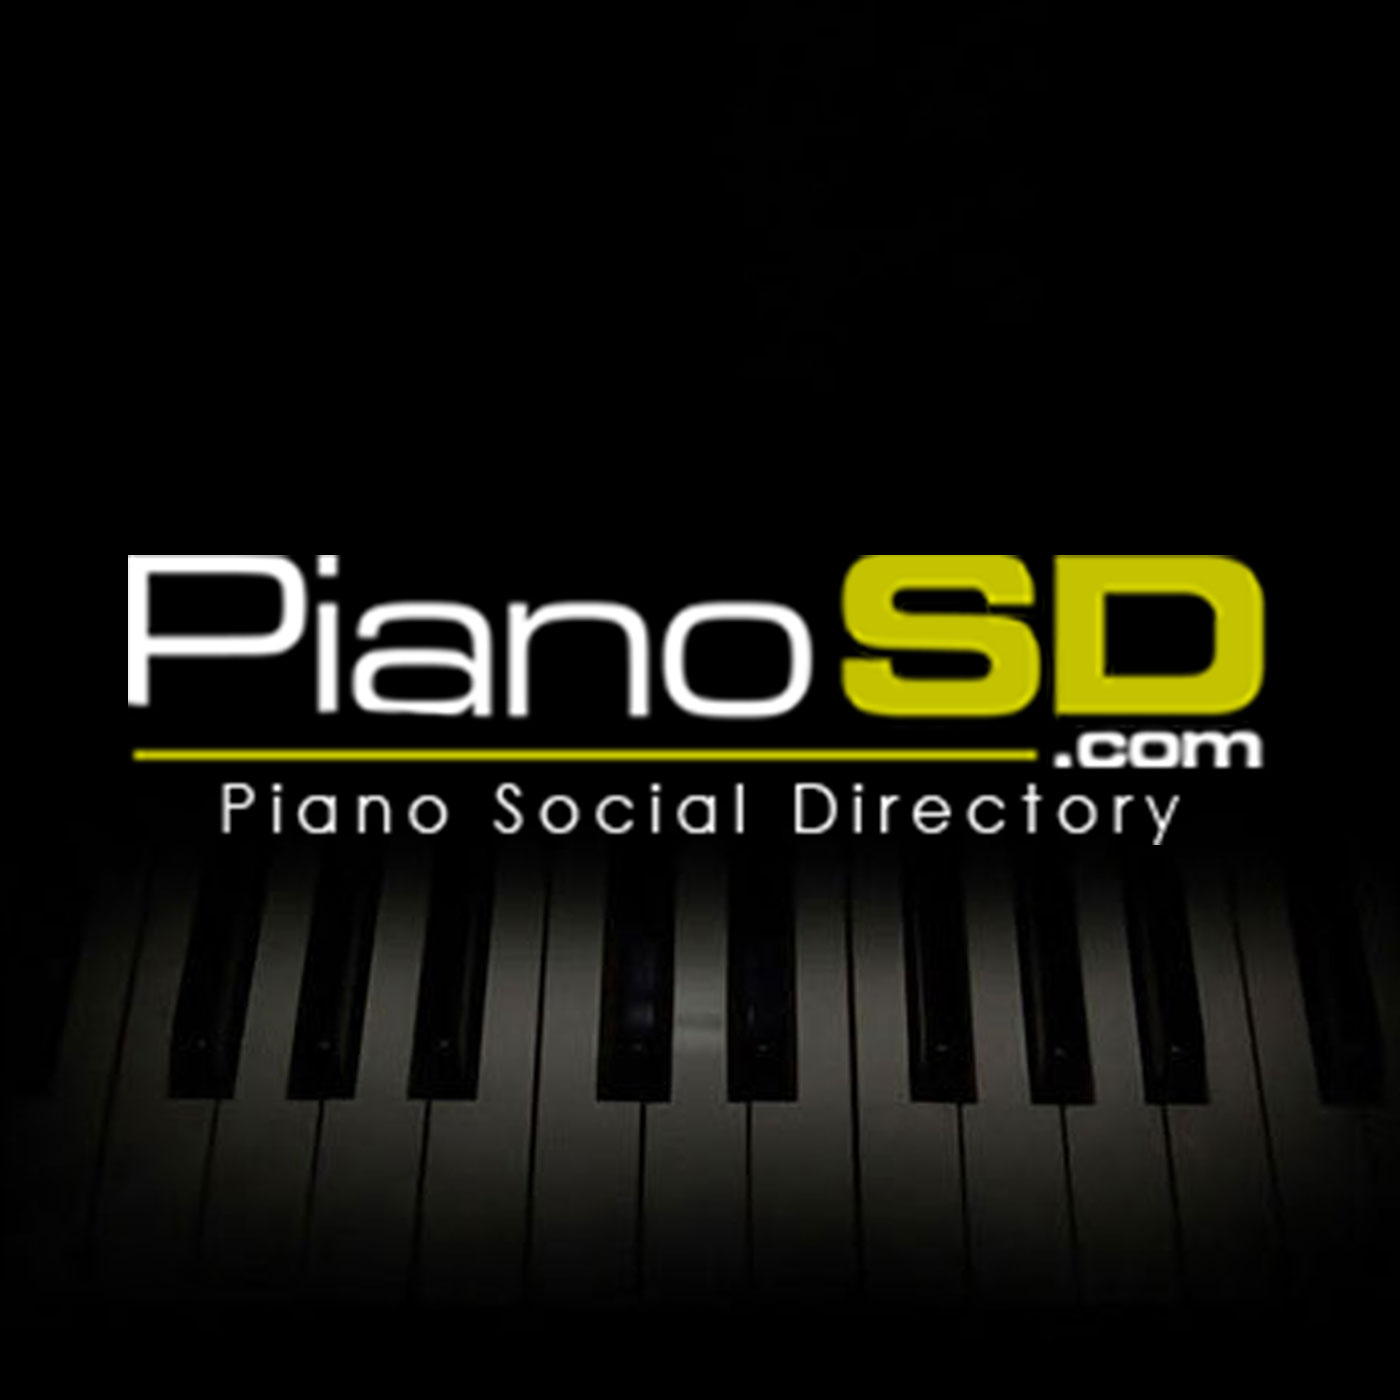 Live At PianoSD.com - The Official Piano Social Network Podcast